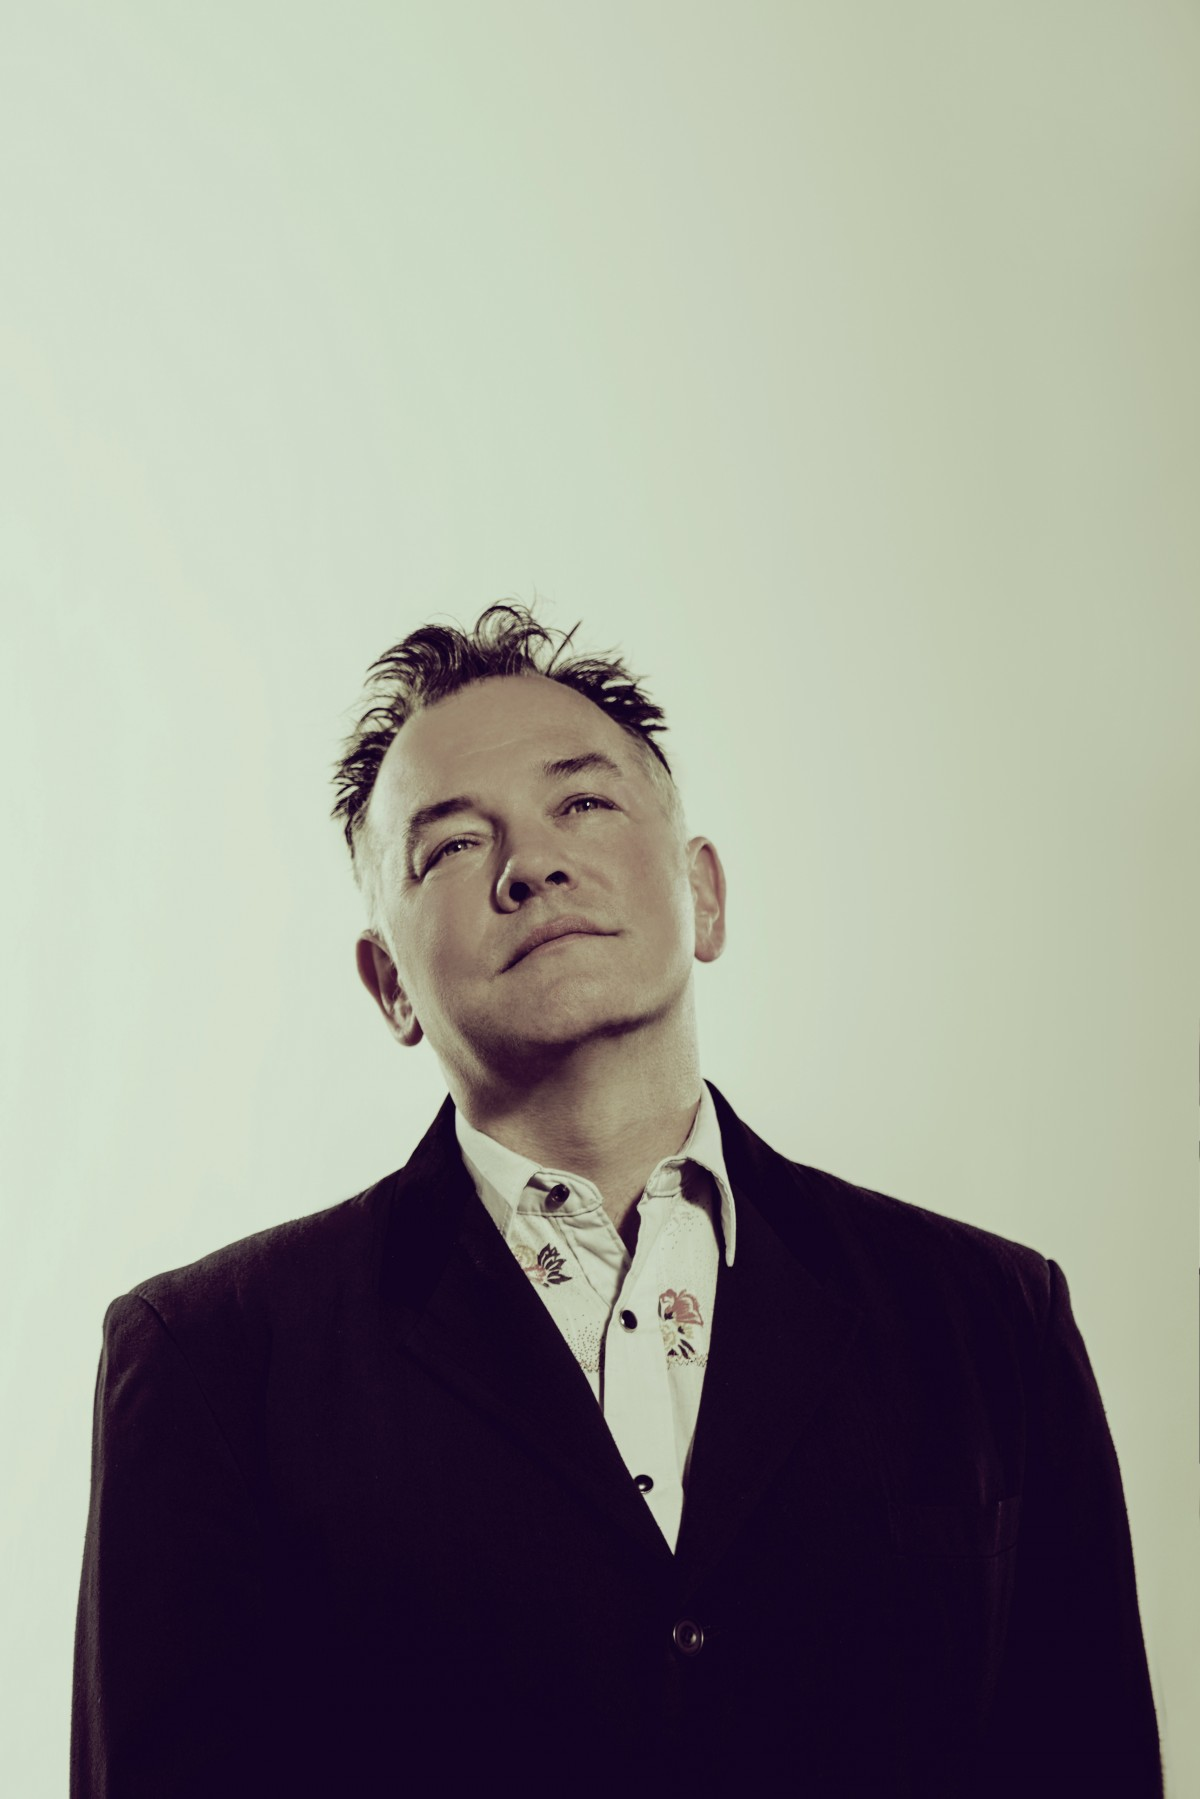 Enter for your chance to laugh the night away at Stewart Lee's awesome comedy stand-up show!